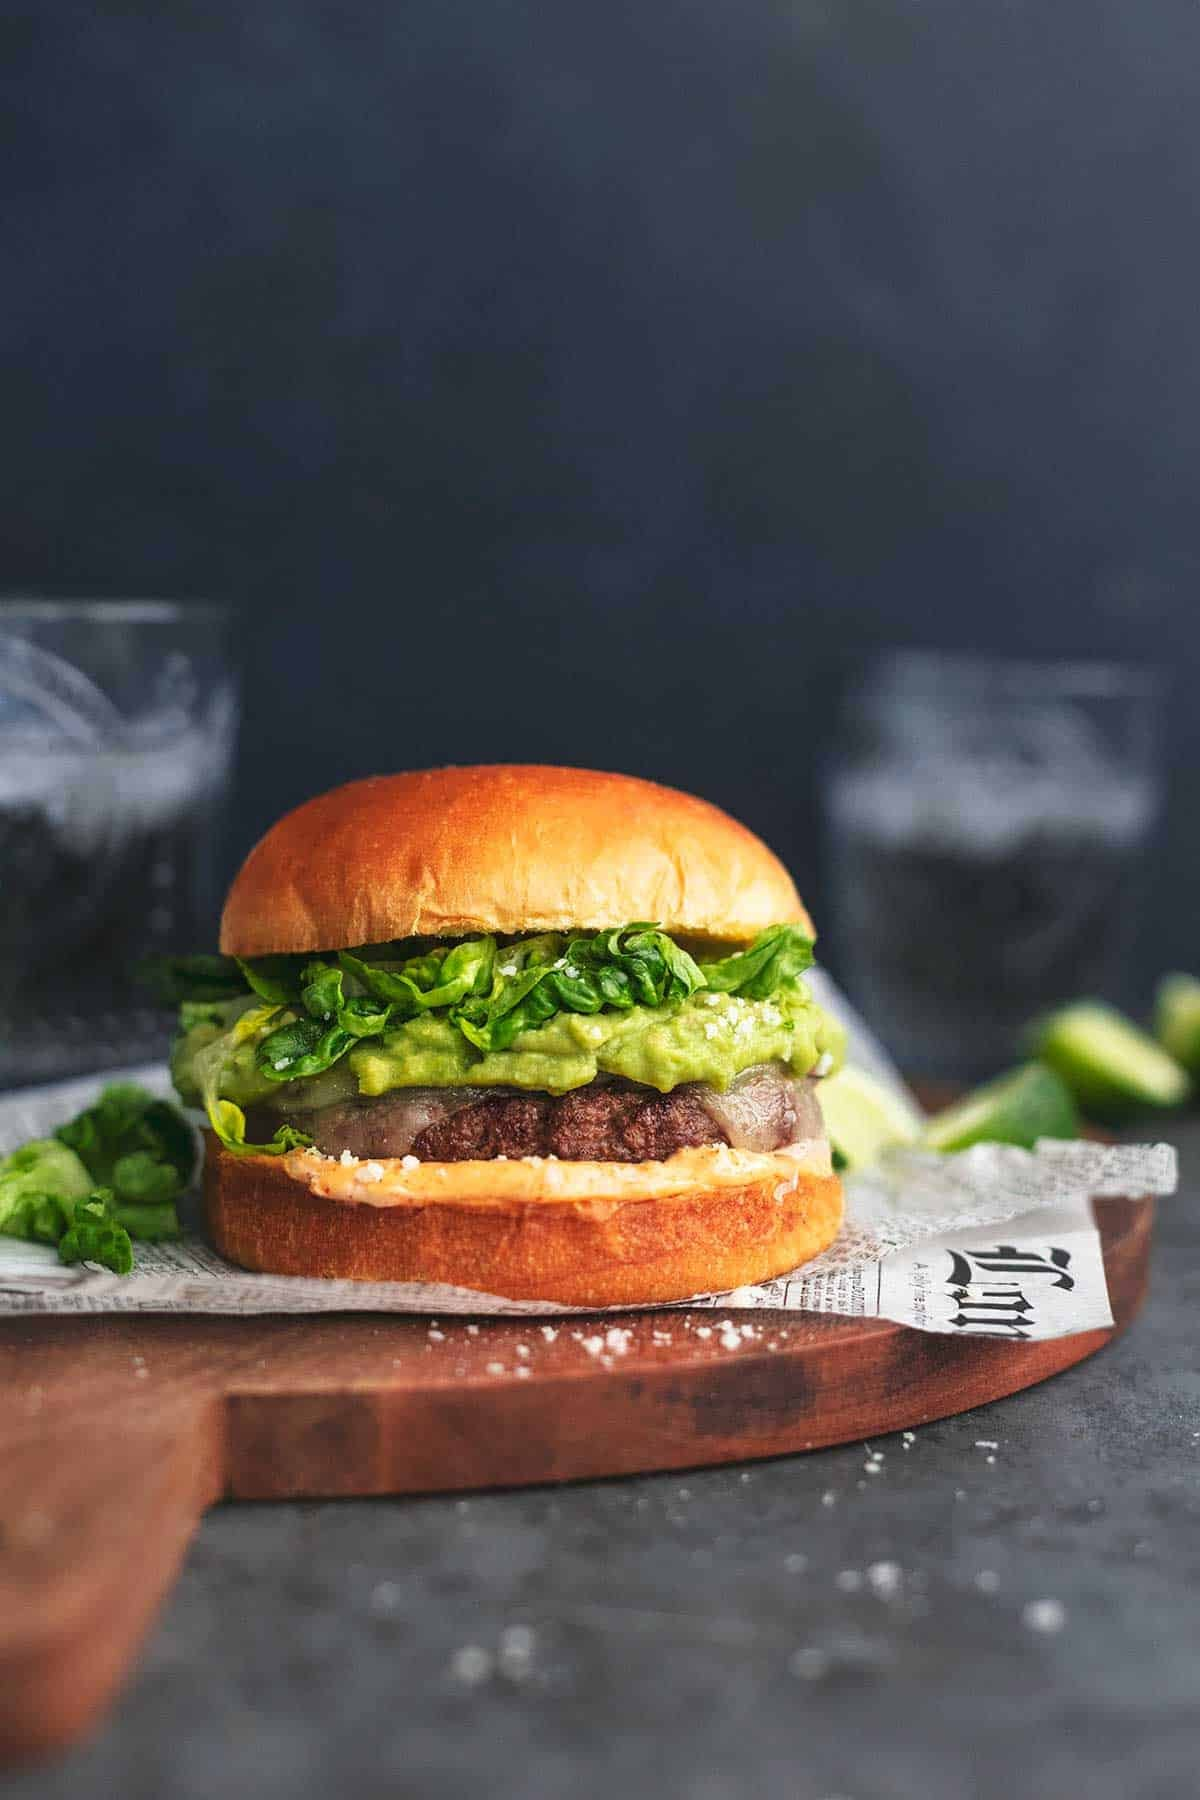 head-on view of turkey burger on cutting board with glass of soda